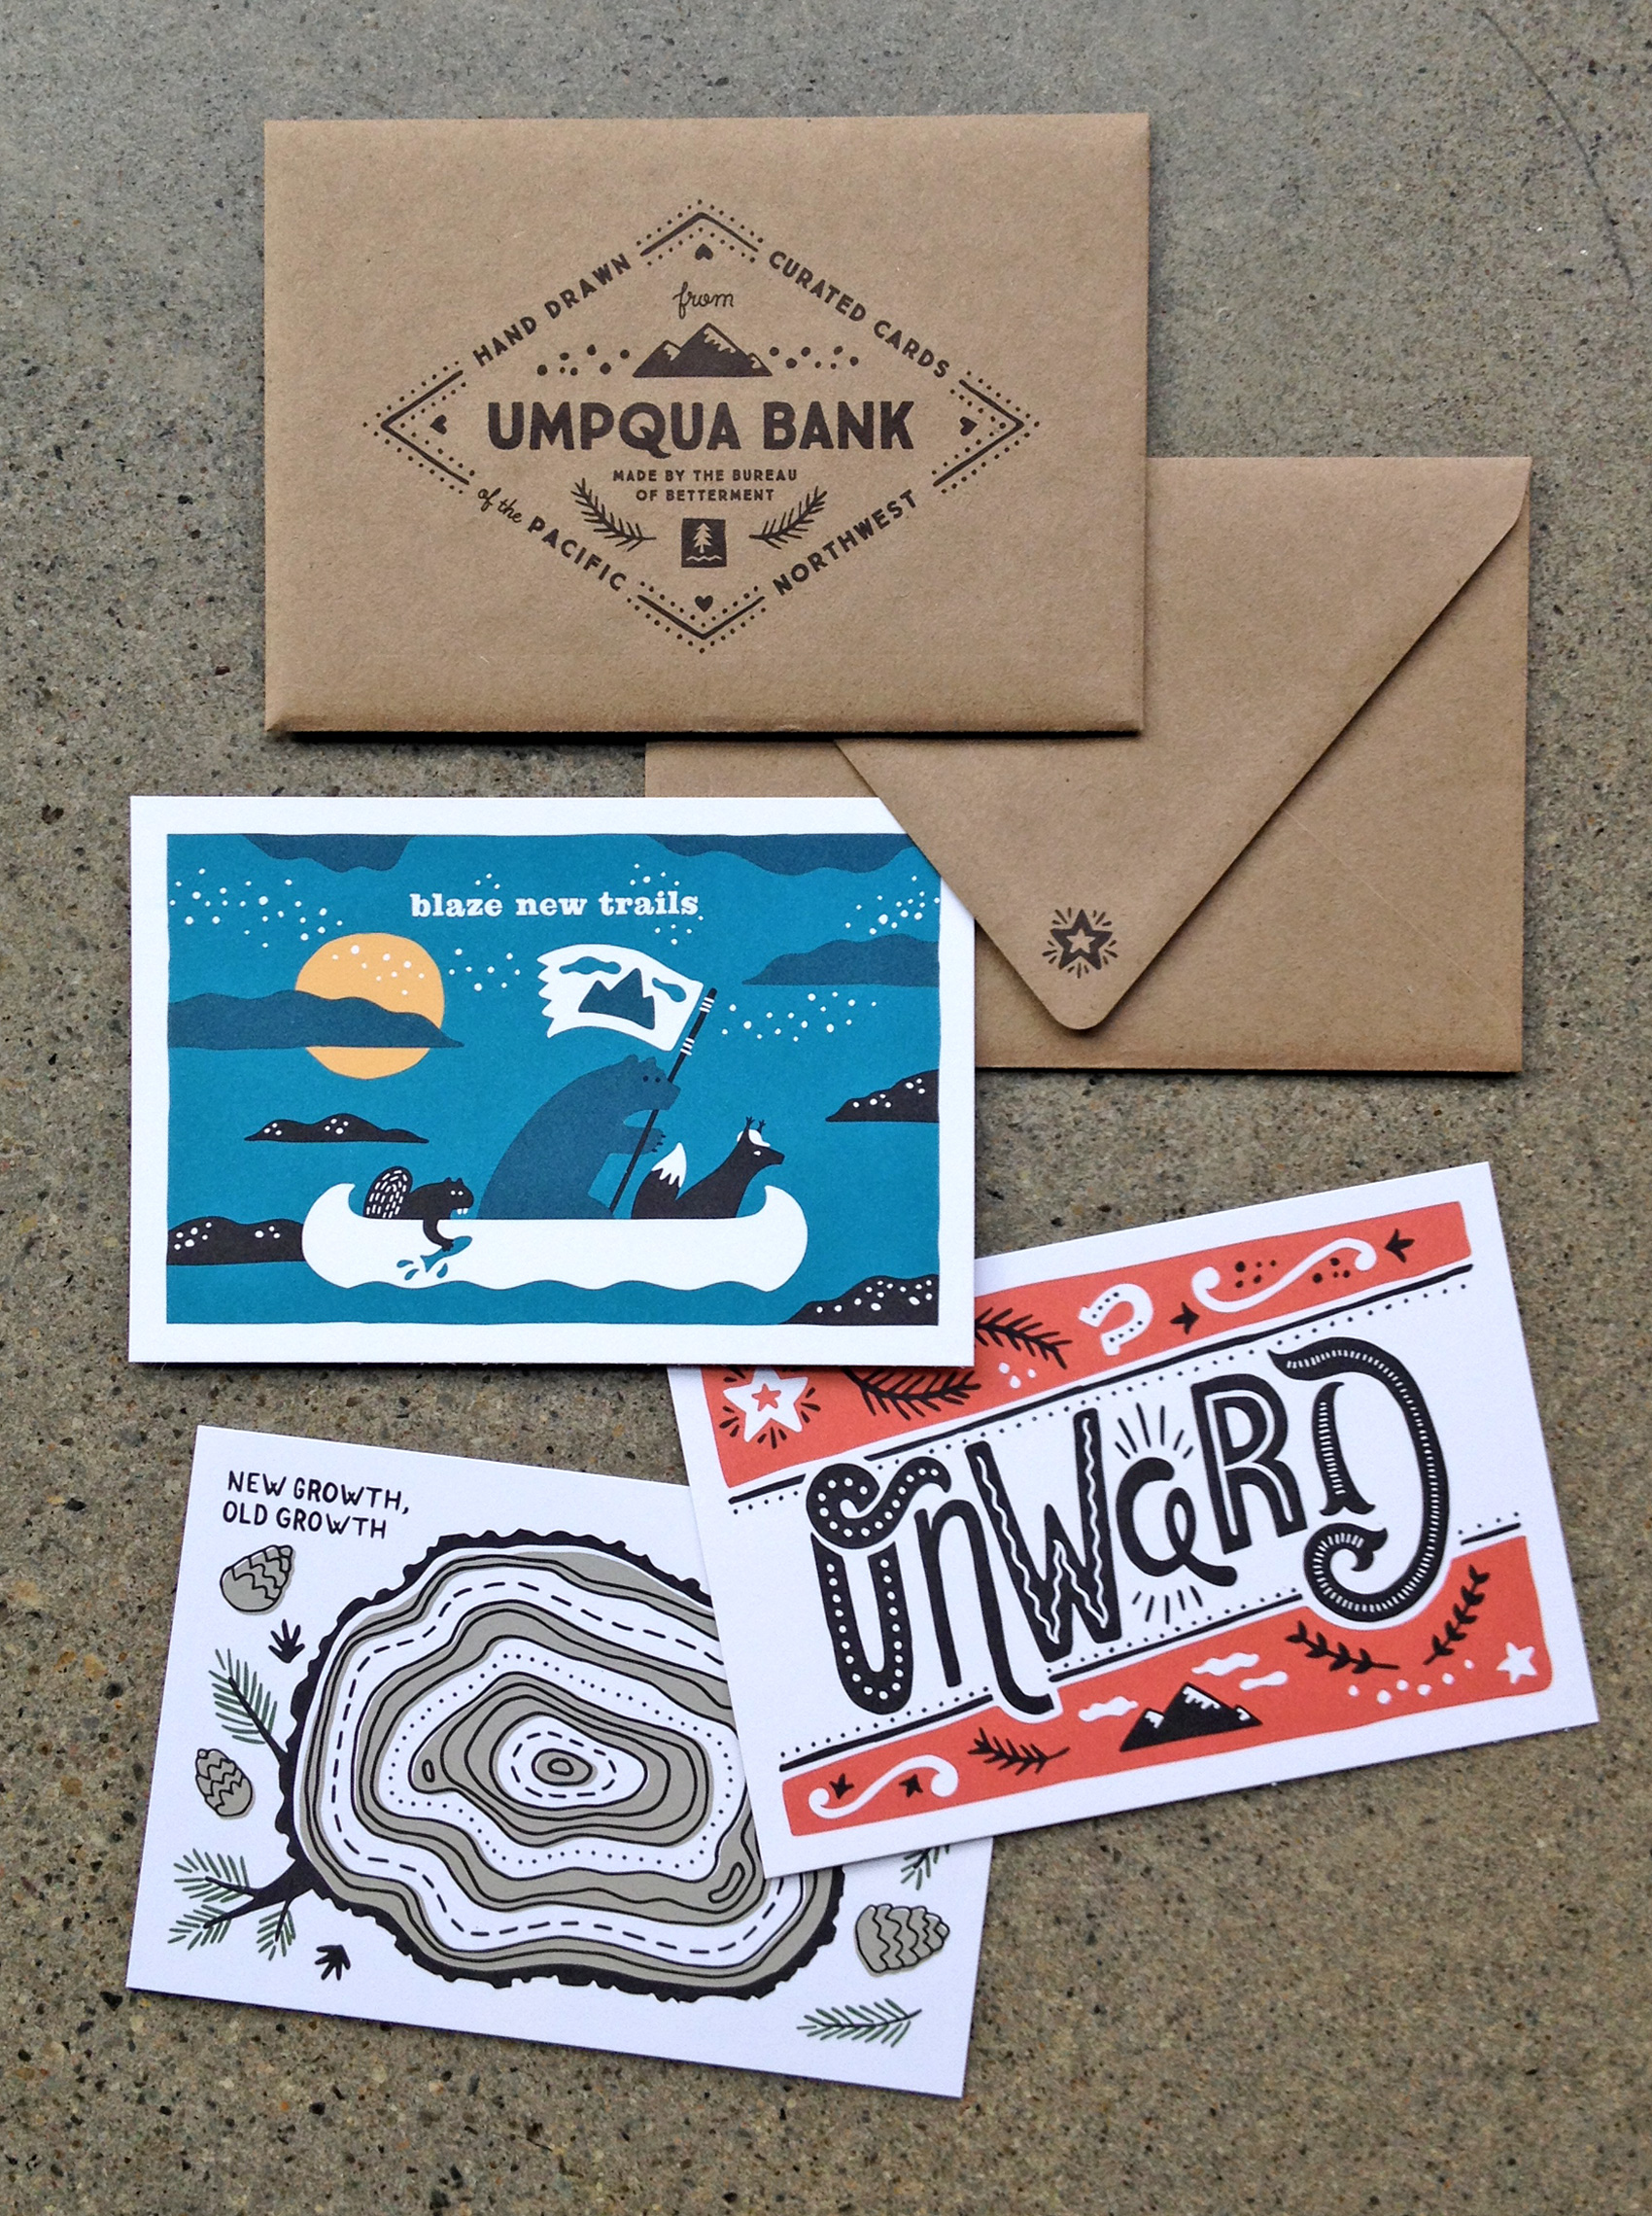 set of three postcards and envelope for Umpqua Bank - blaze new trails, onward, and old growth new growth